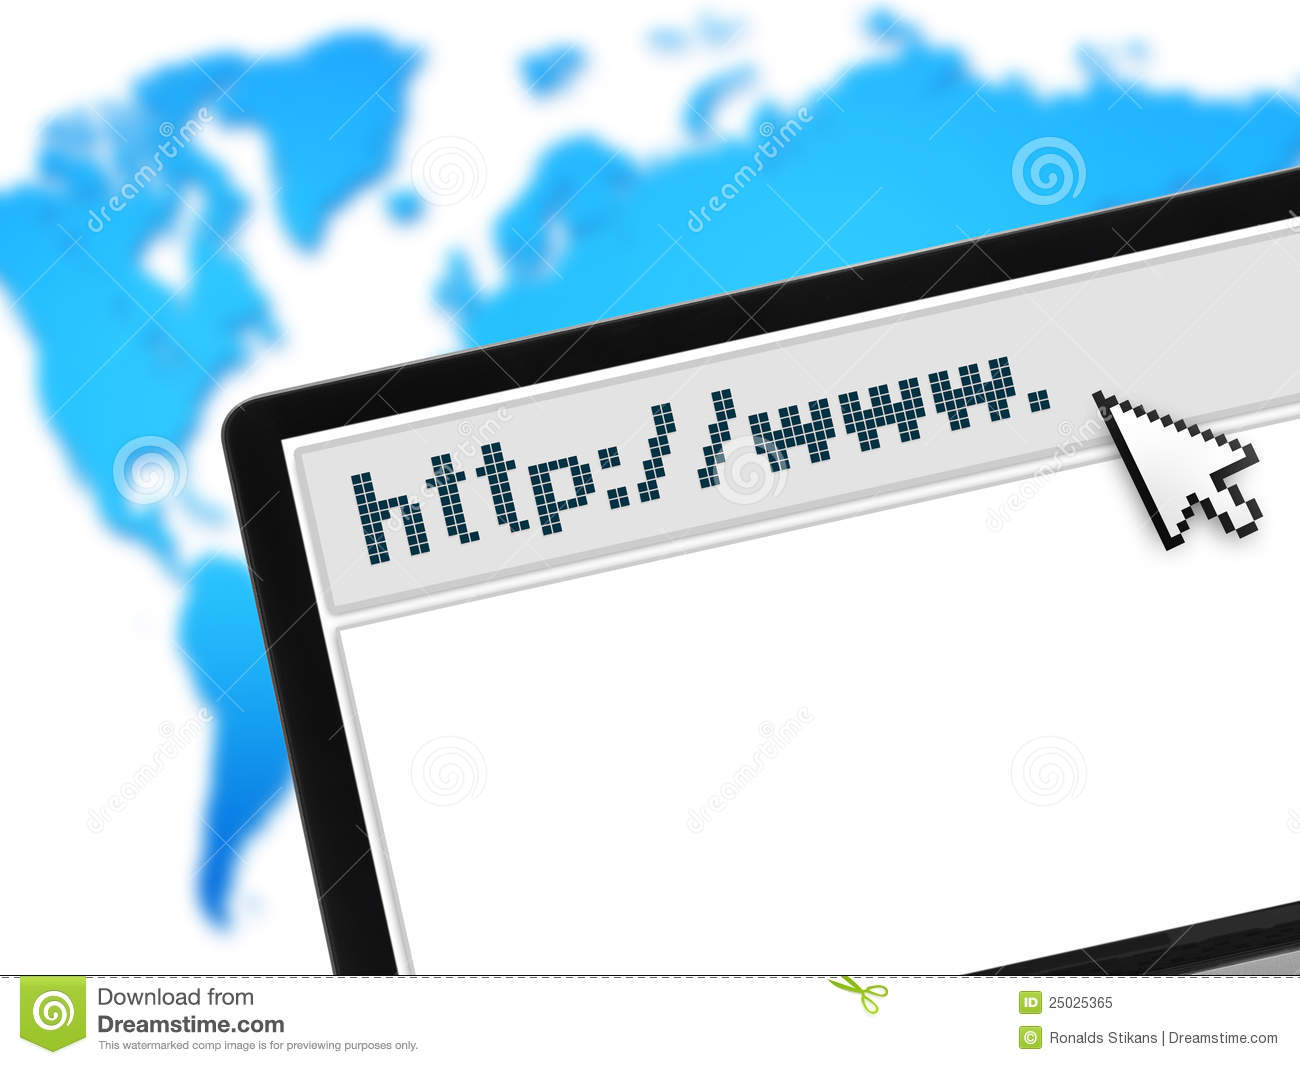 Laptop with web browser over world map stock image image of laptop with web browser over world map gumiabroncs Choice Image